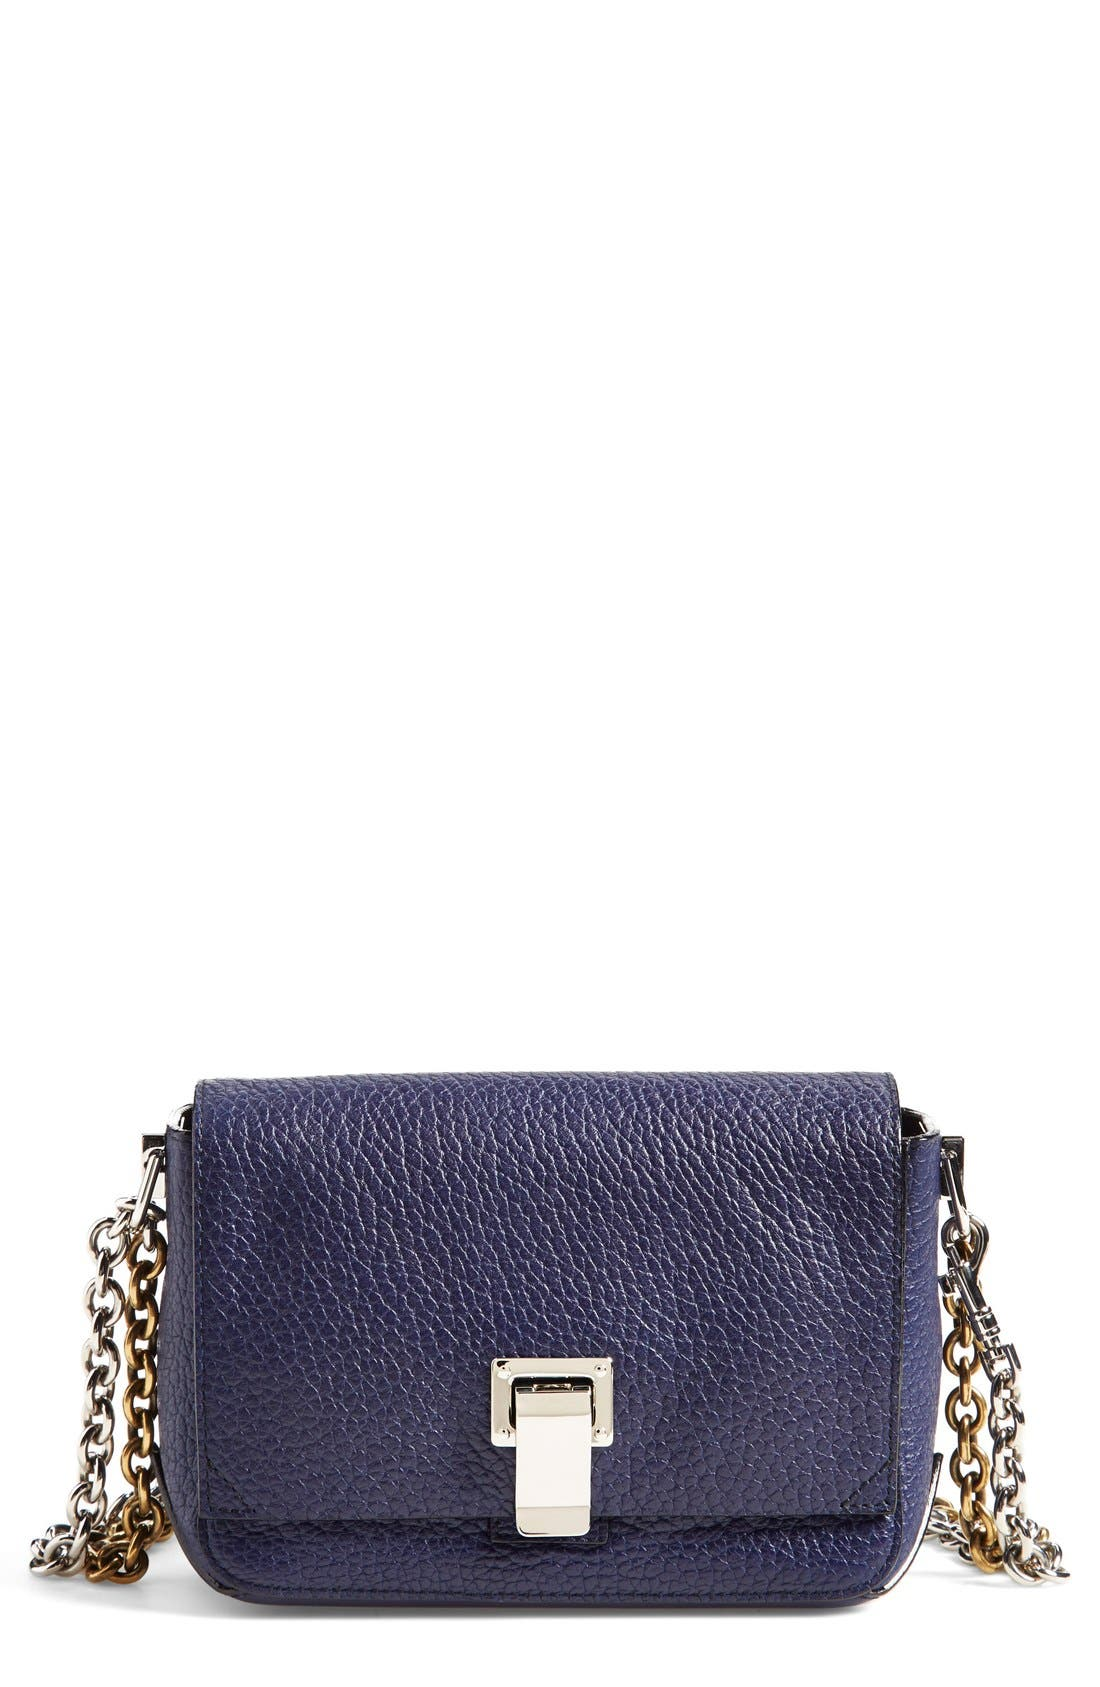 Alternate Image 1 Selected - Proenza Schouler 'Small Courier' Pebbled Leather Crossbody Bag